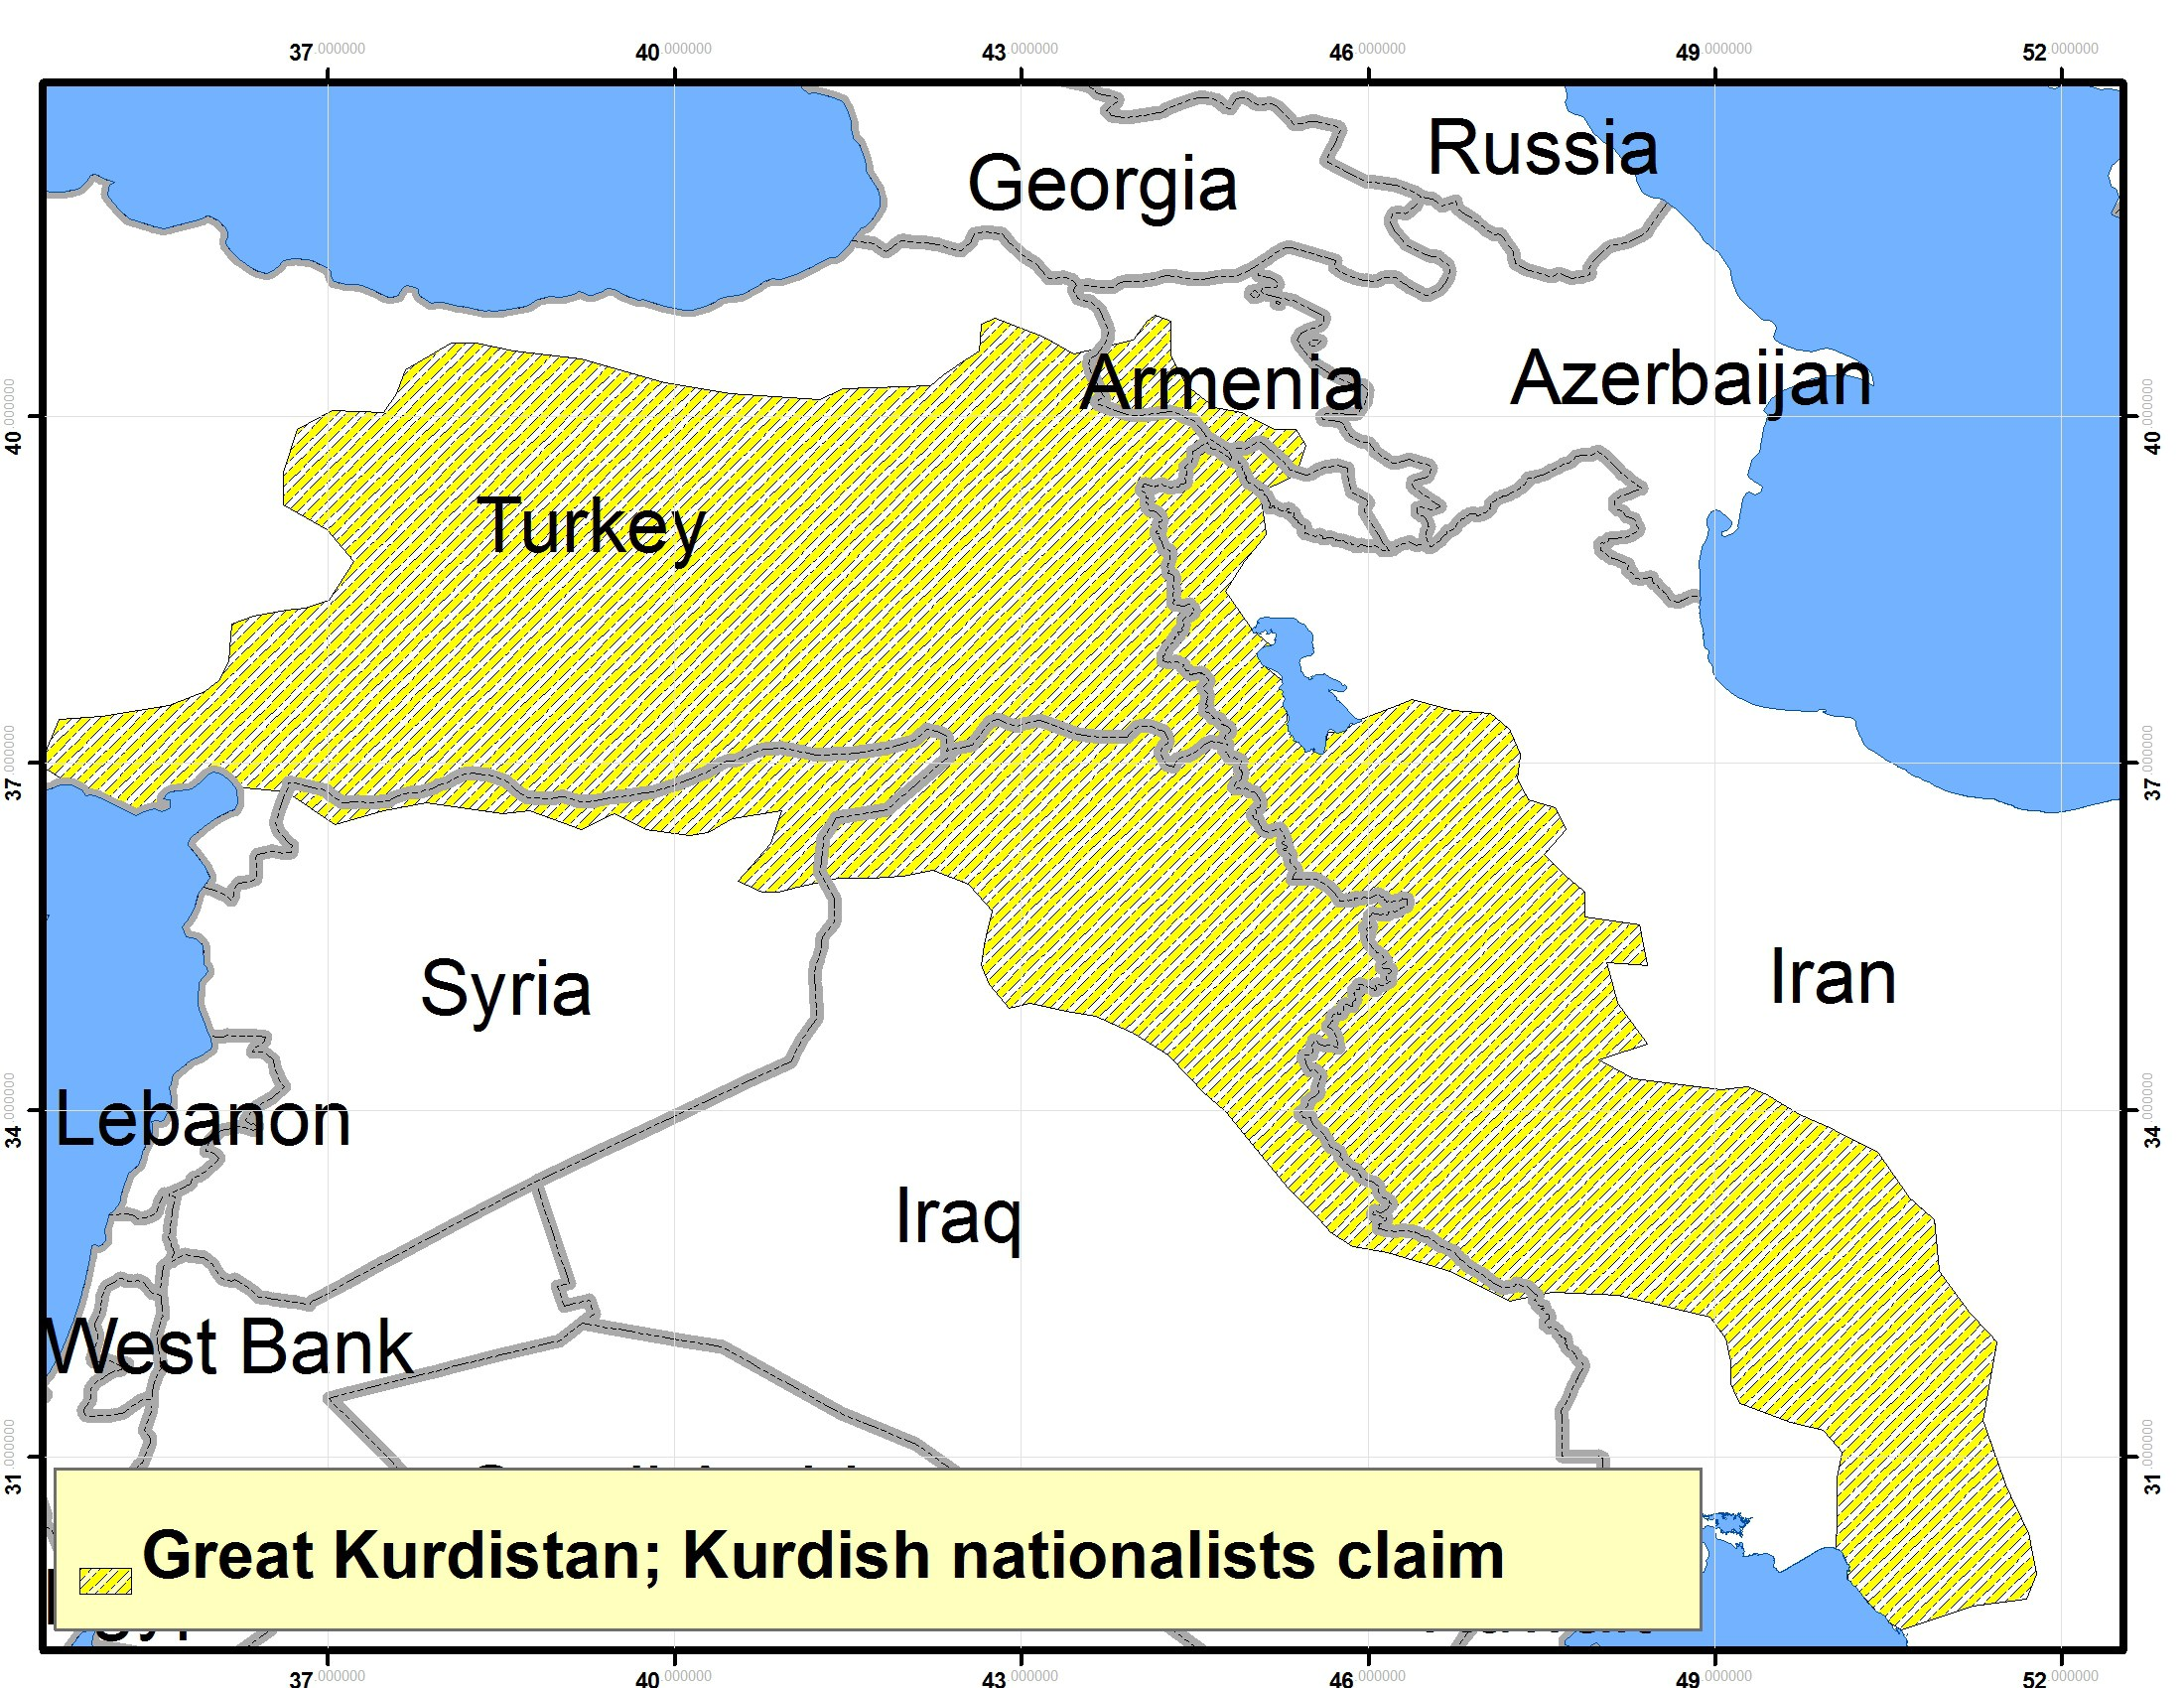 great_kurdistan_kurdish_nationalists_claim